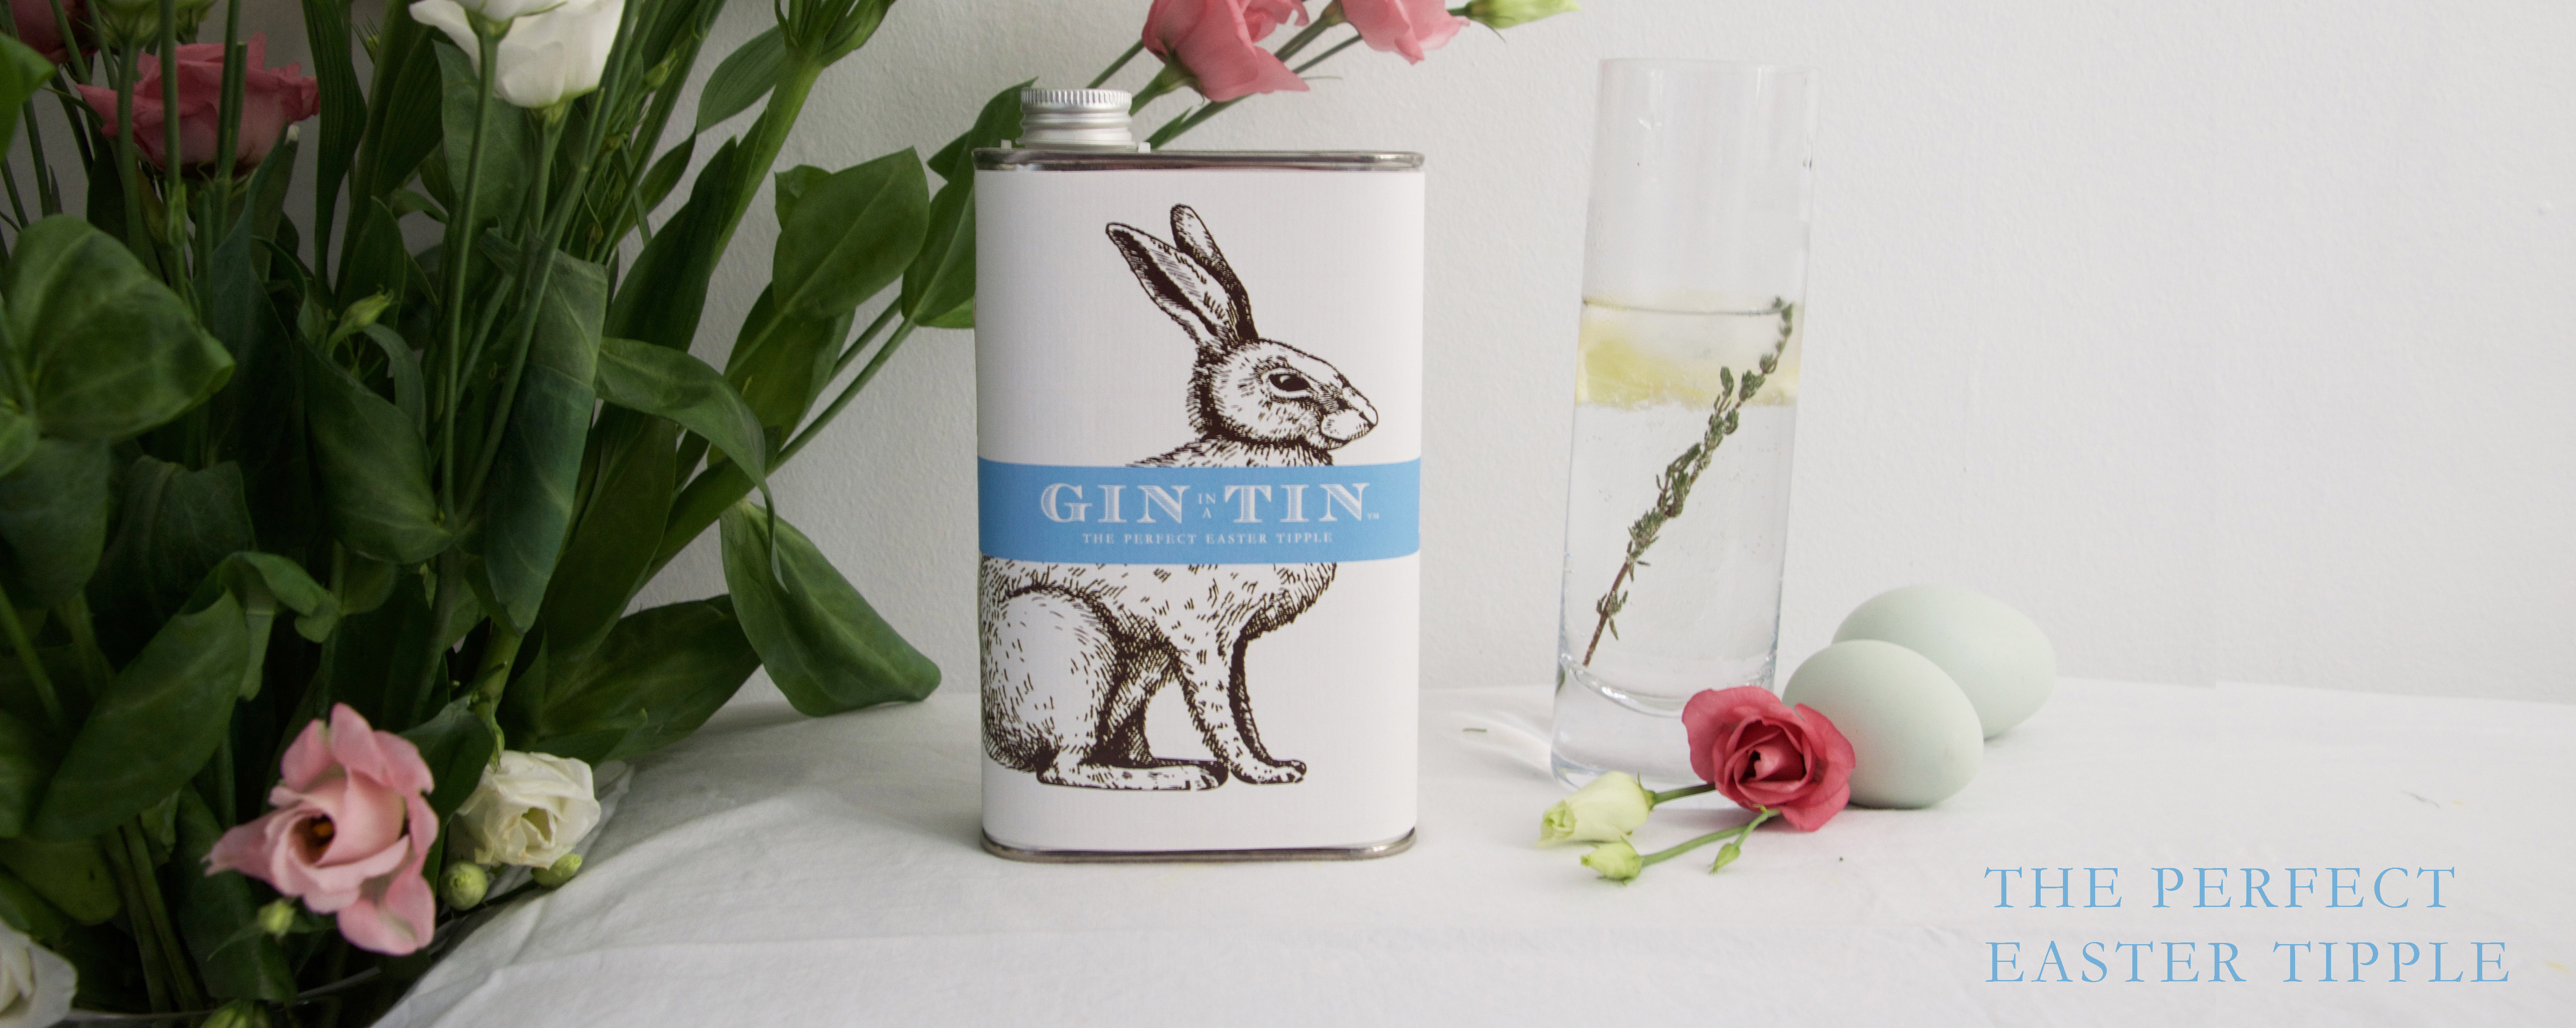 Gin In A Tin - The Perfect Easter Tipple